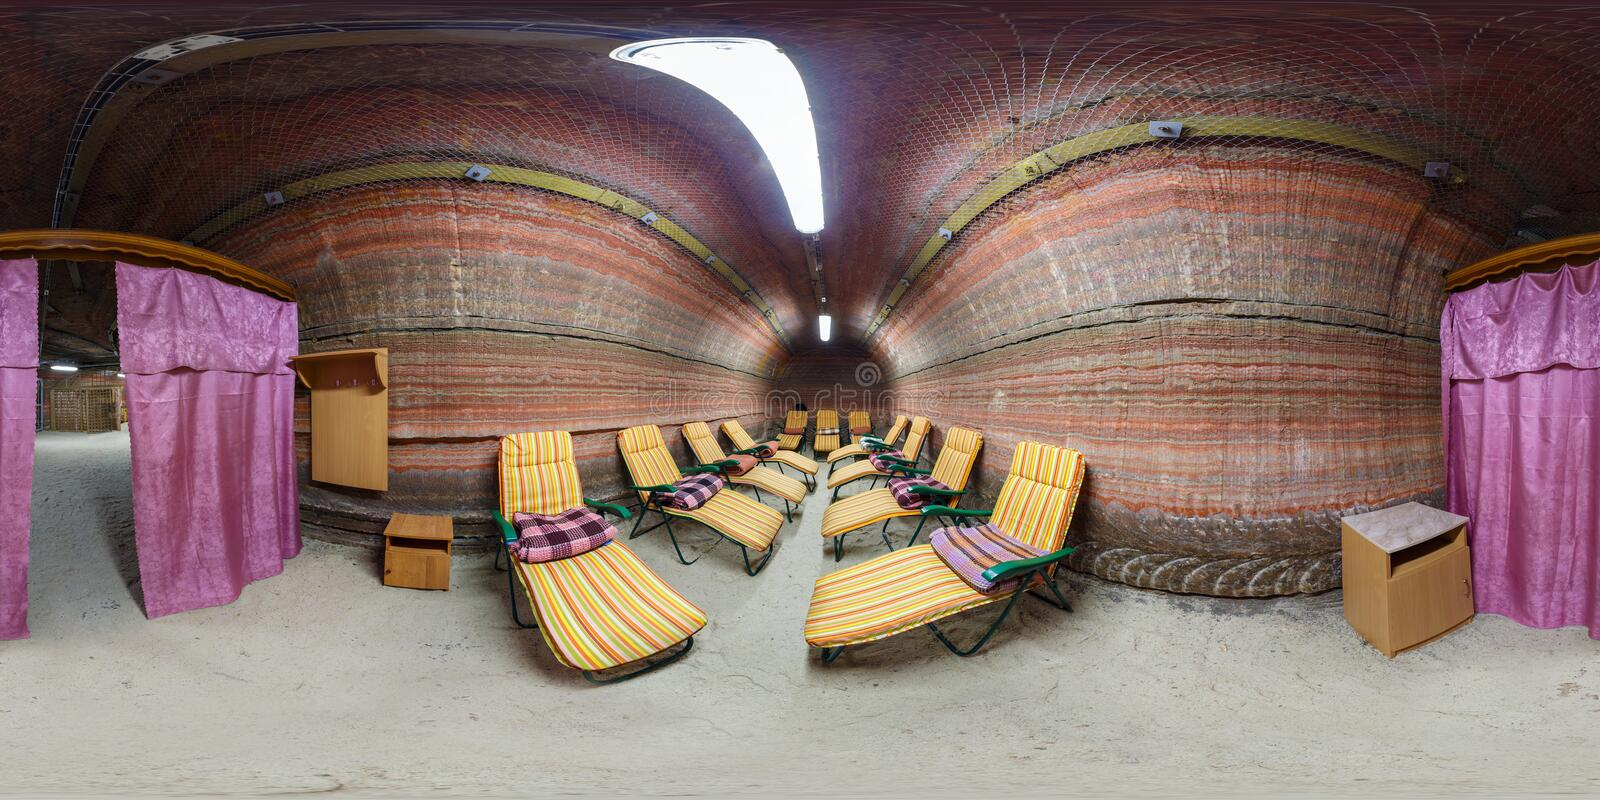 SOLIGORSK, BELARUS - MARCH 8, 2014: full 360 degree panorama in equirectangular spherical equidistant projection in rest dayroom royalty free stock photography